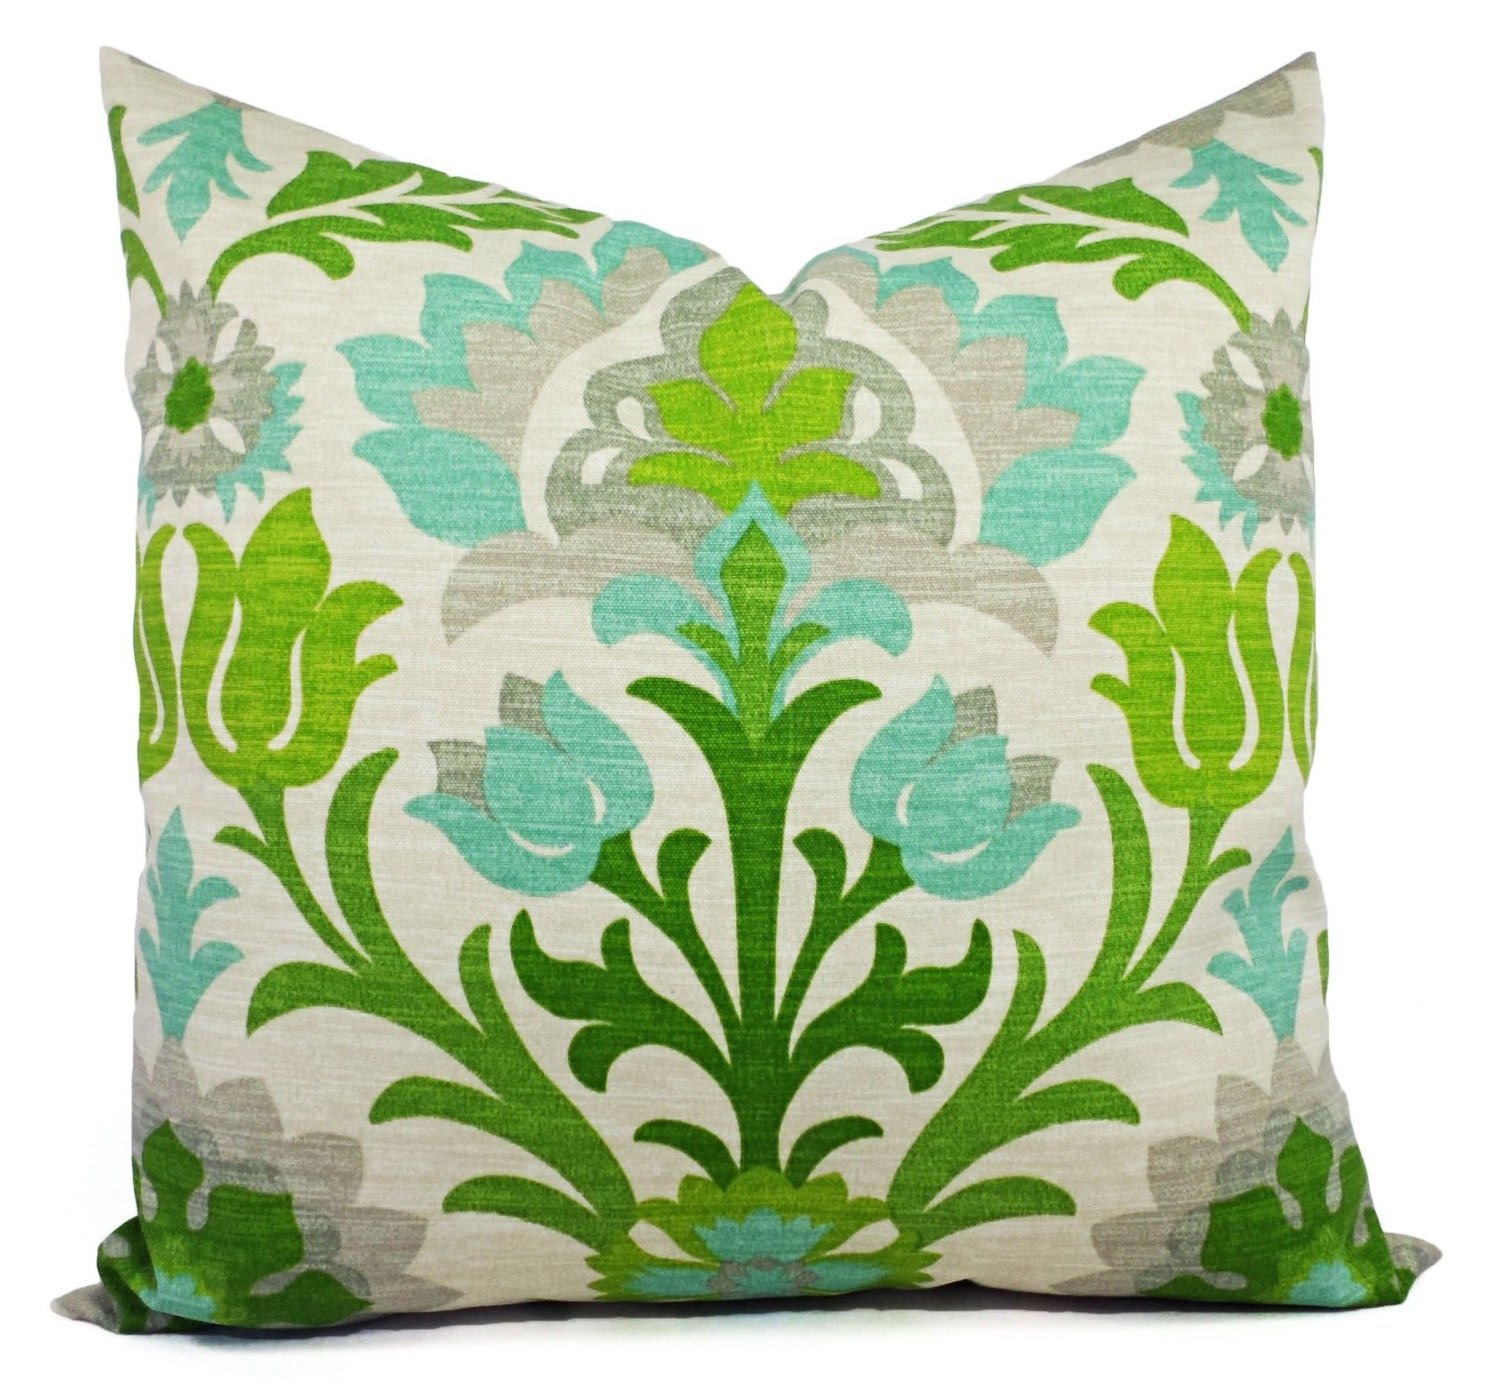 Two Green Outdoor Pillow Covers Green Outdoor Pillows